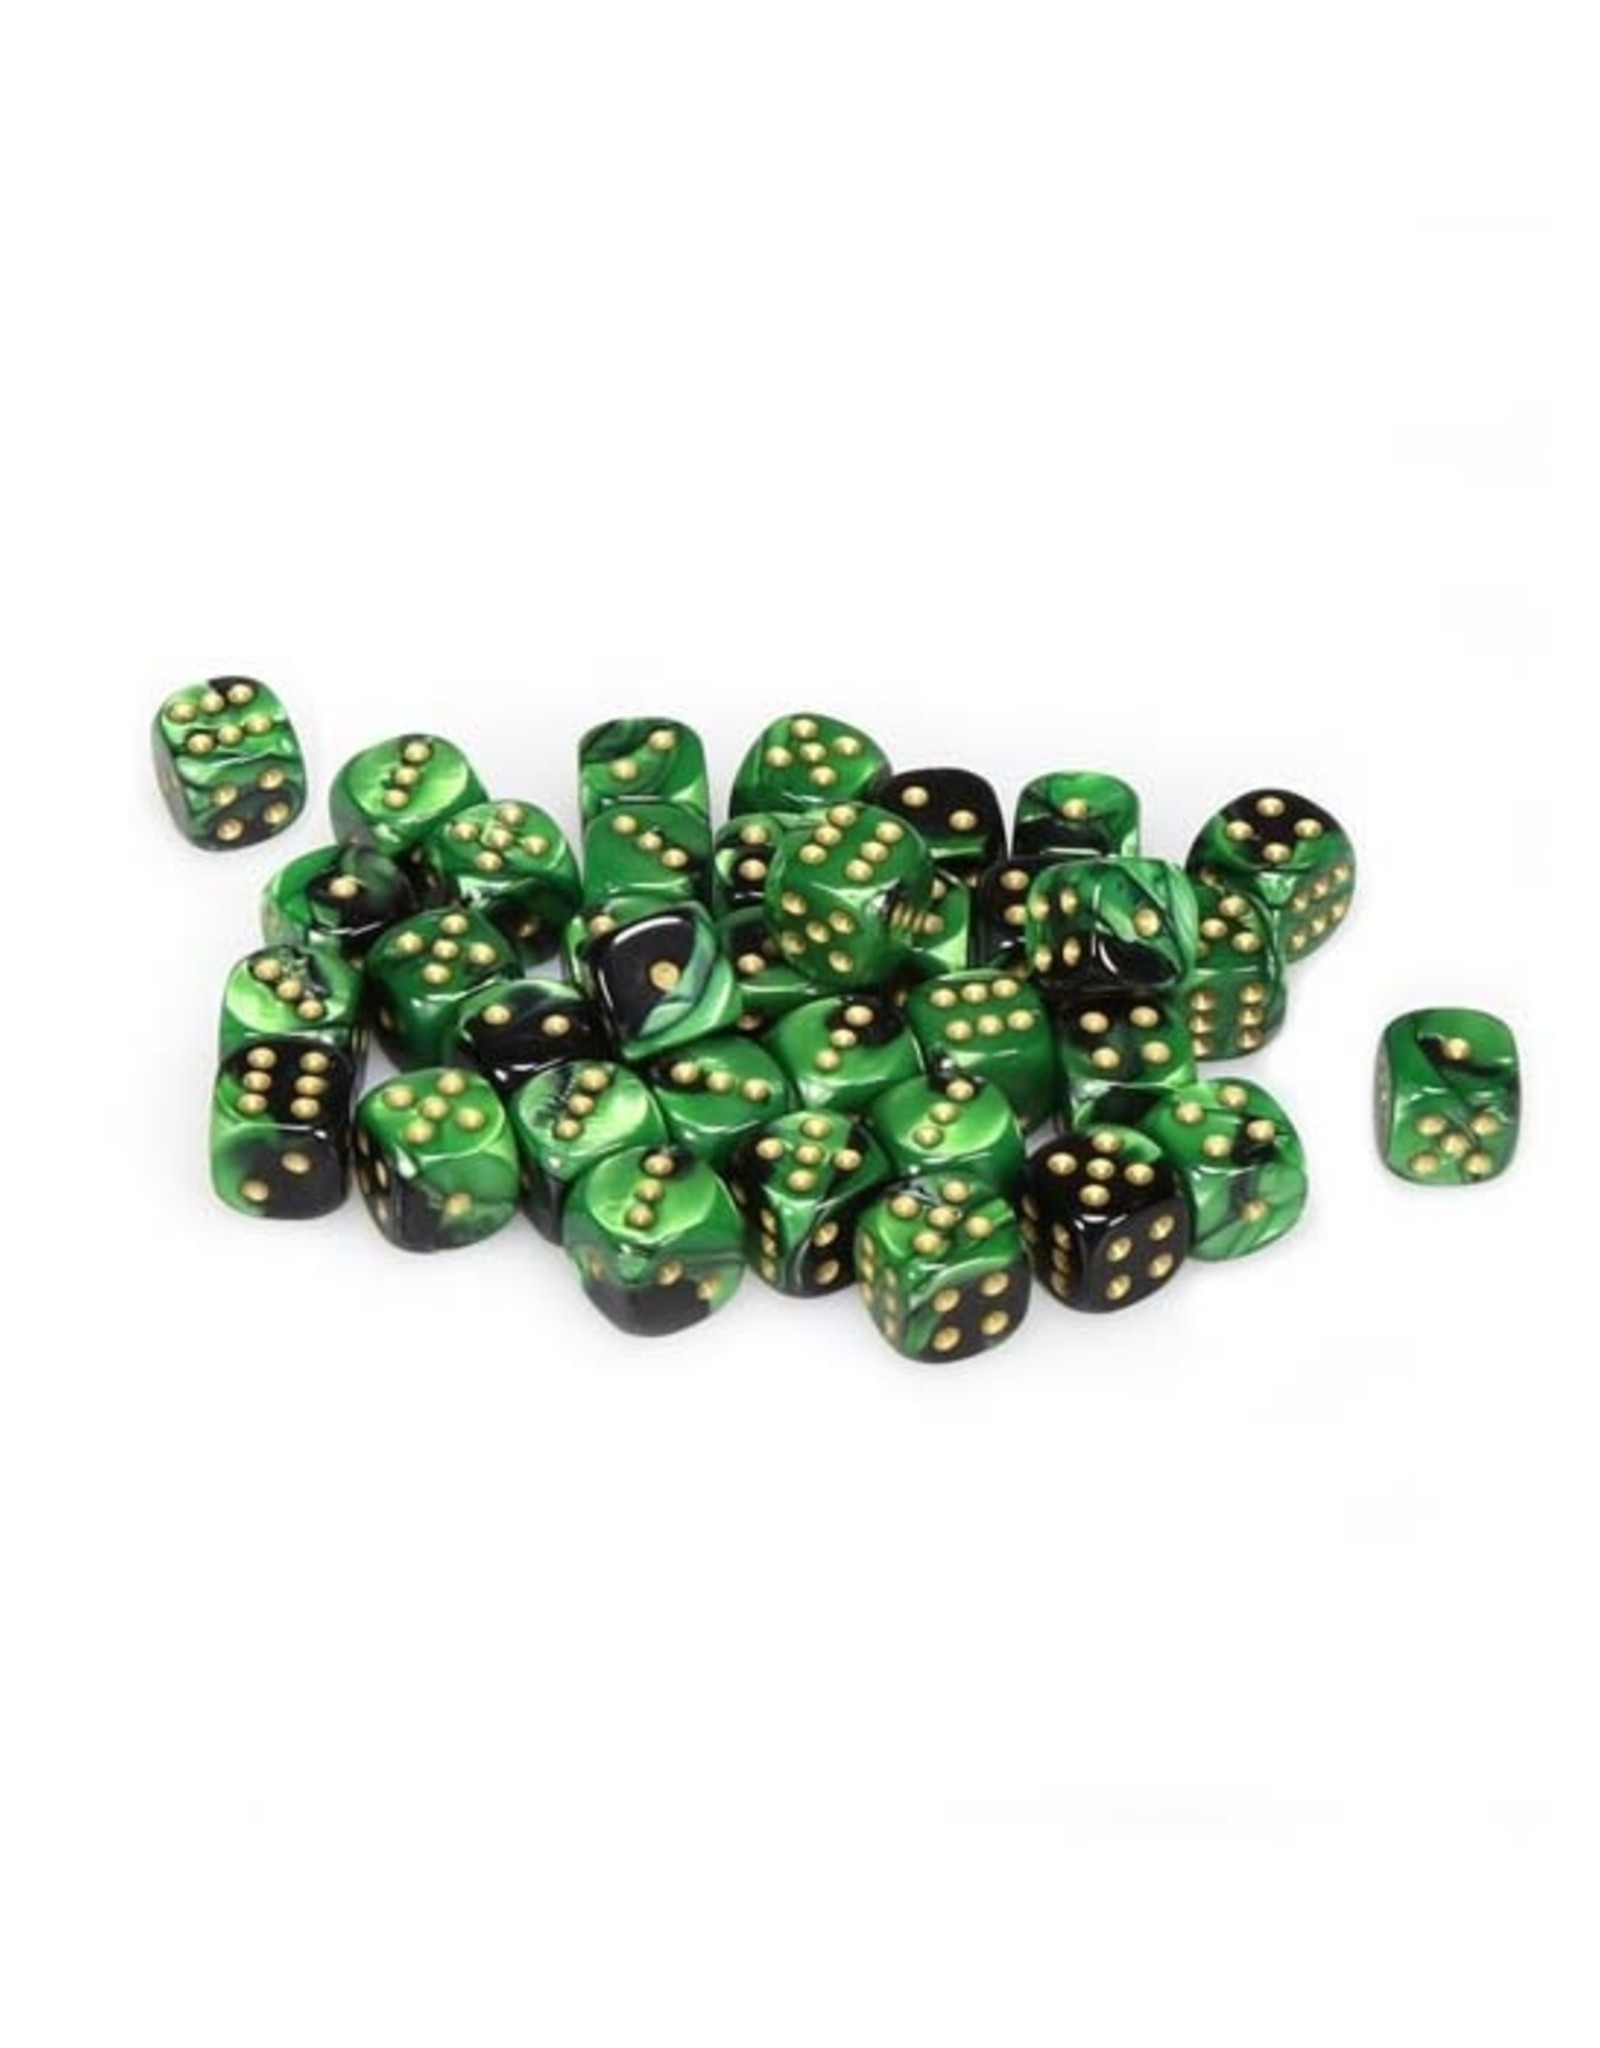 Chessex Chessex: 12mm D6 - Gemini - Black Green w/ Gold